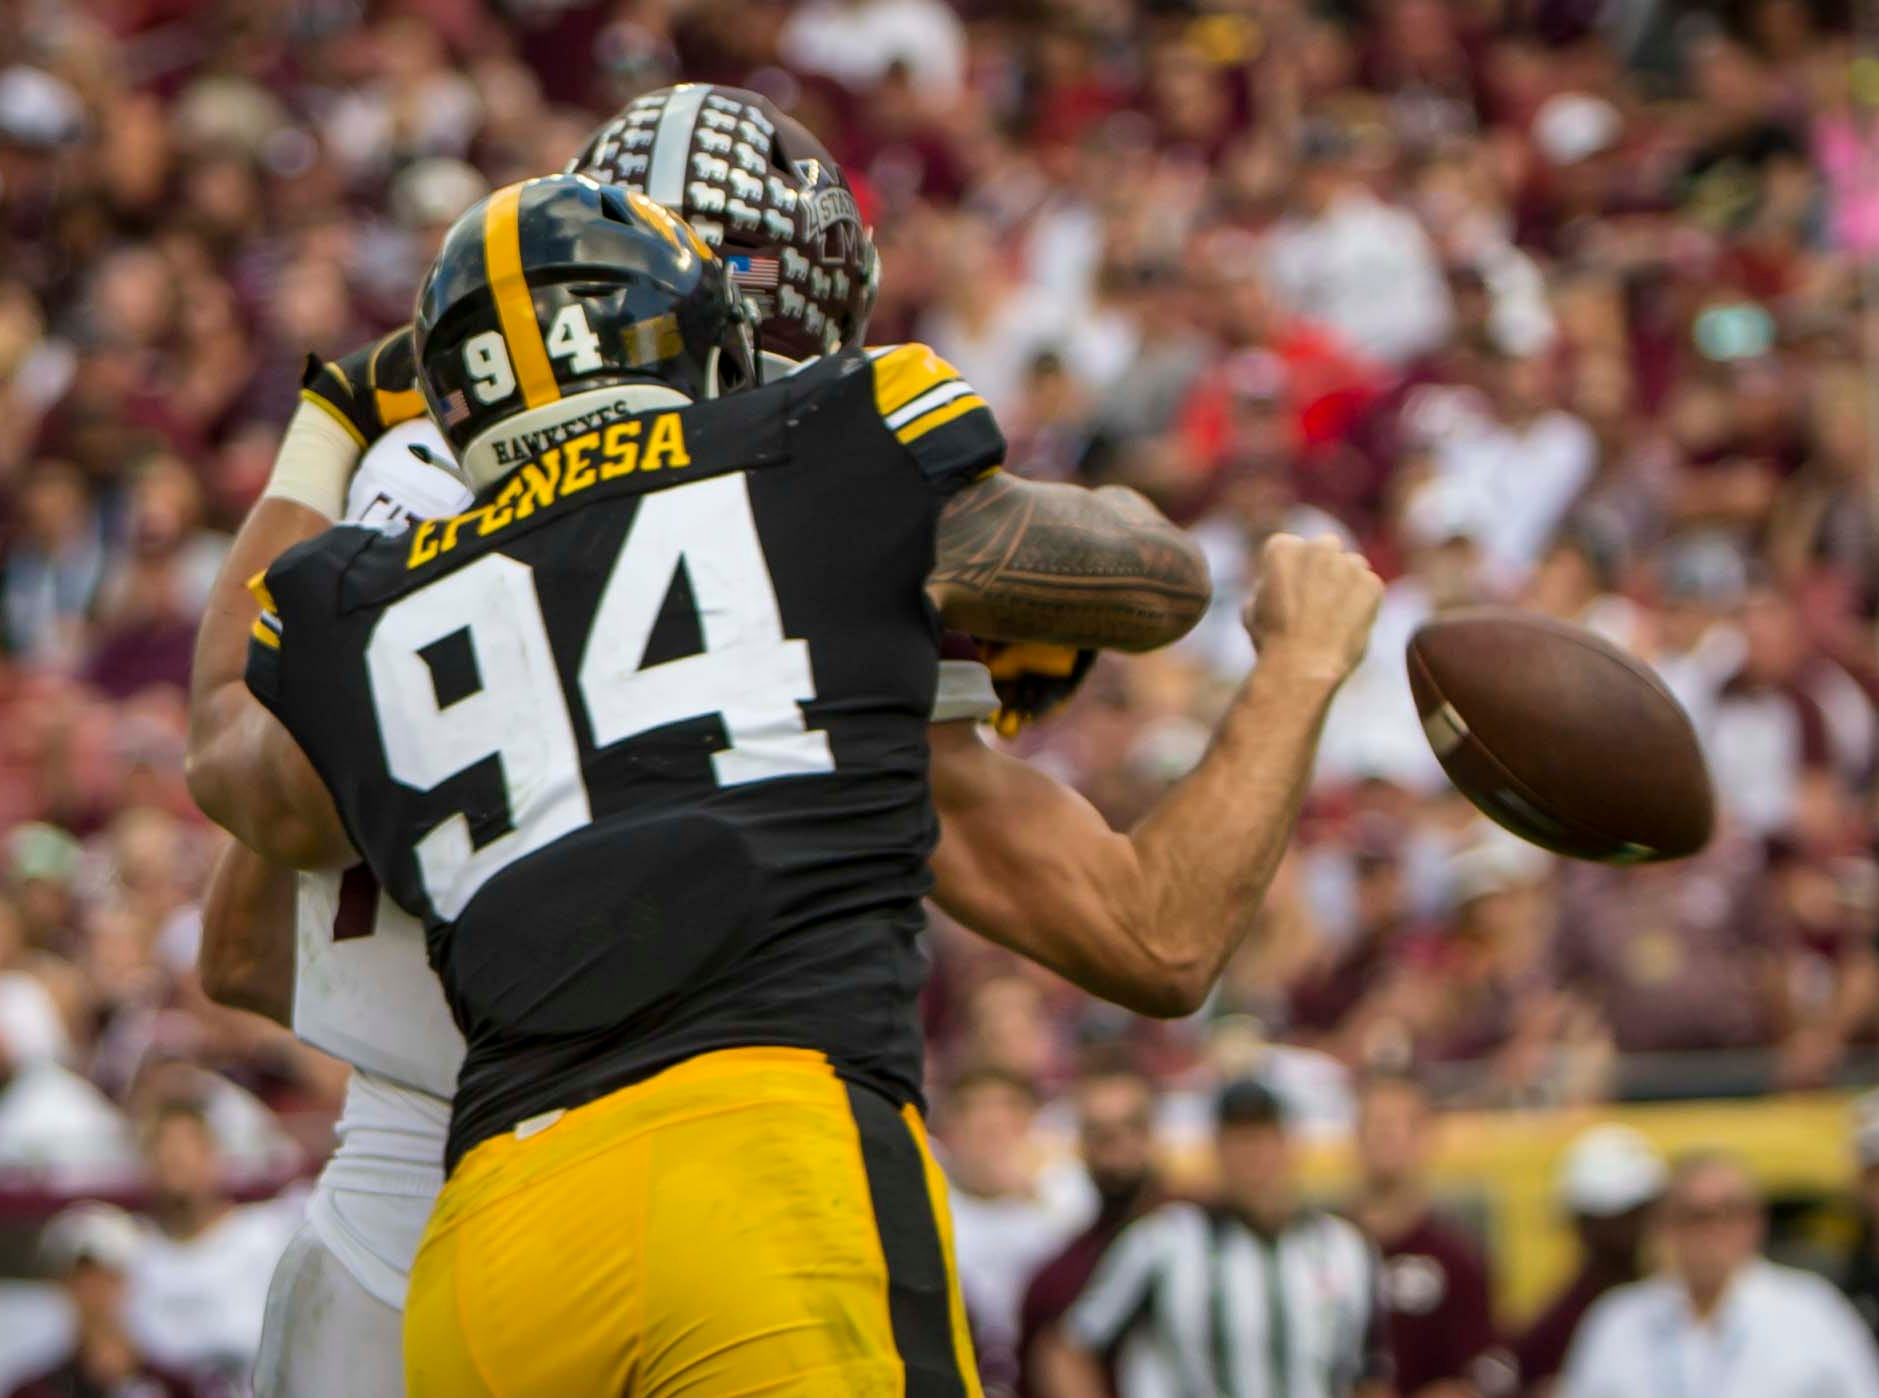 Iowa defensive end A.J. Epenesa sacks and forces a fumble on Mississippi State's quarterback Nick Fitzgerald in the first half at the  Outback Bowl Tues., Jan. 1, 2019, at Raymond James Stadium in Tampa, Florida. Iowa takes a 17-6 lead over Miss. St. into halftime.